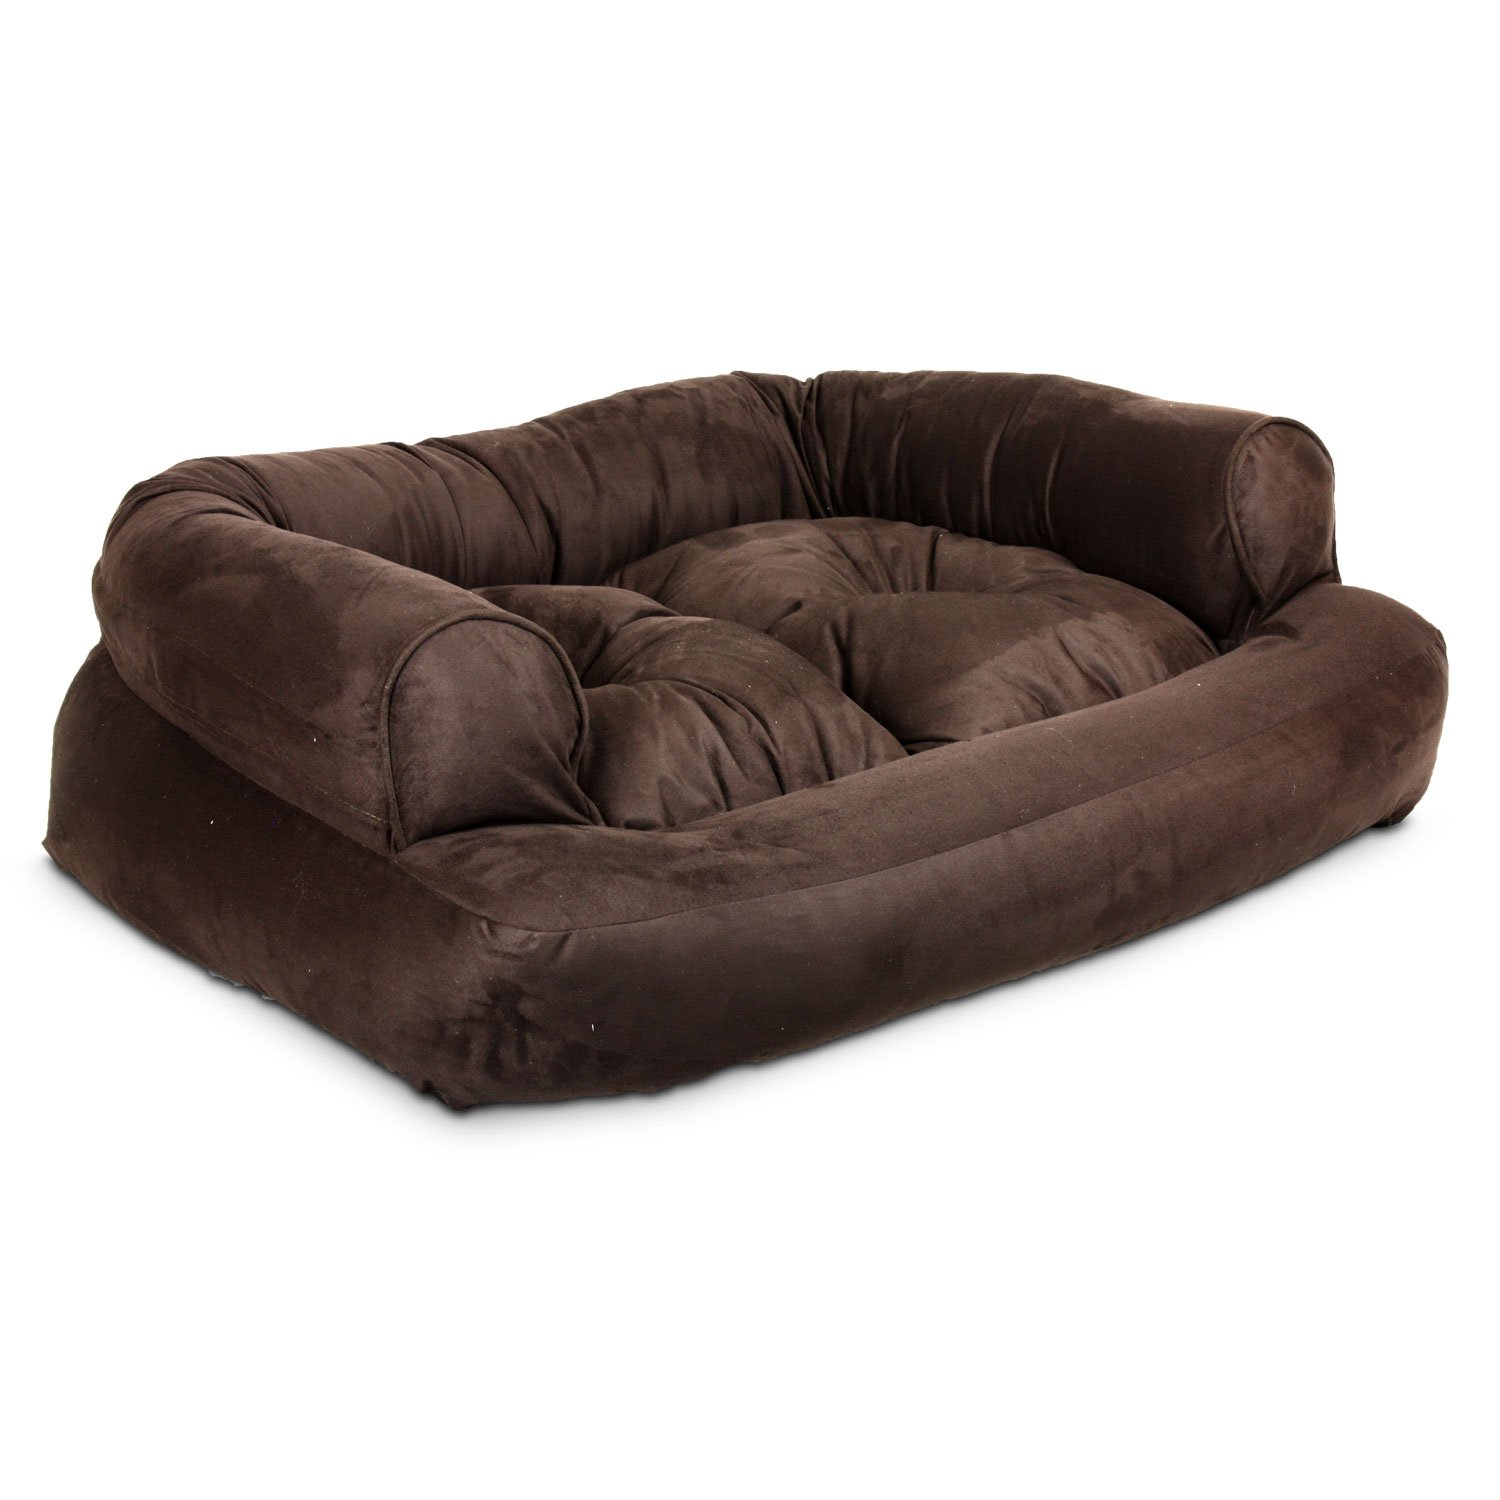 Snoozer Luxury Overstuffed Sofa In Hot Fudge Petco